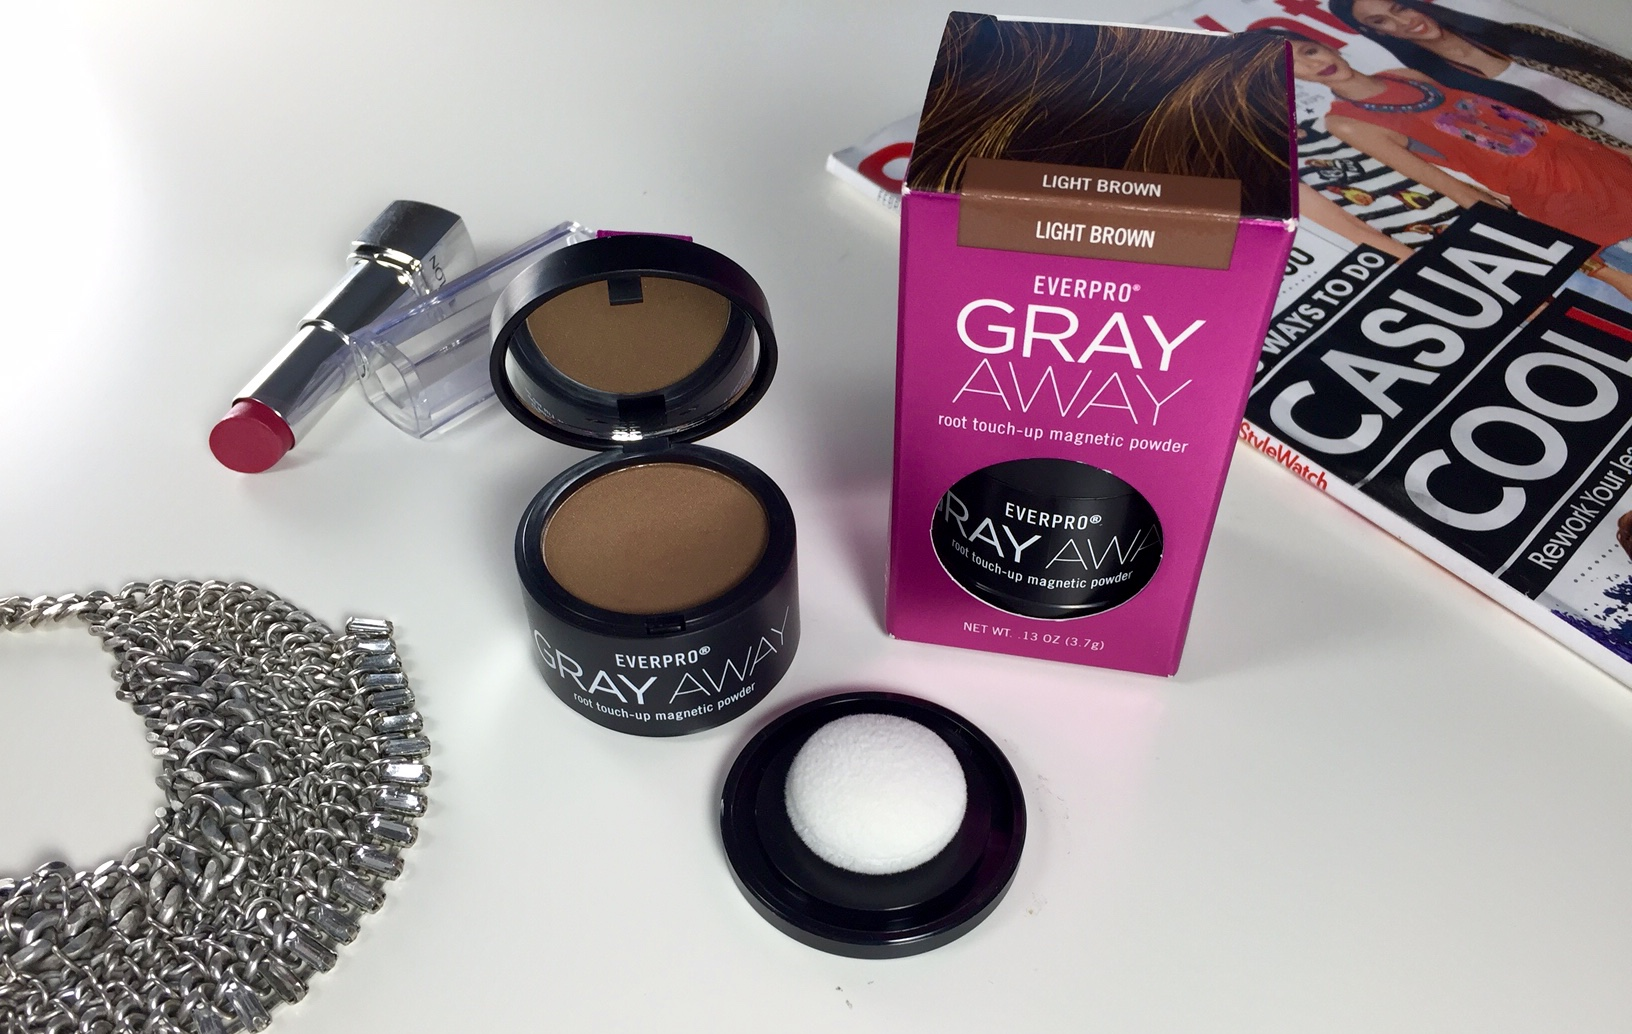 A Genius Way To Conceal The Gray : Gray Away Root Touch-Up Magnetic Powder